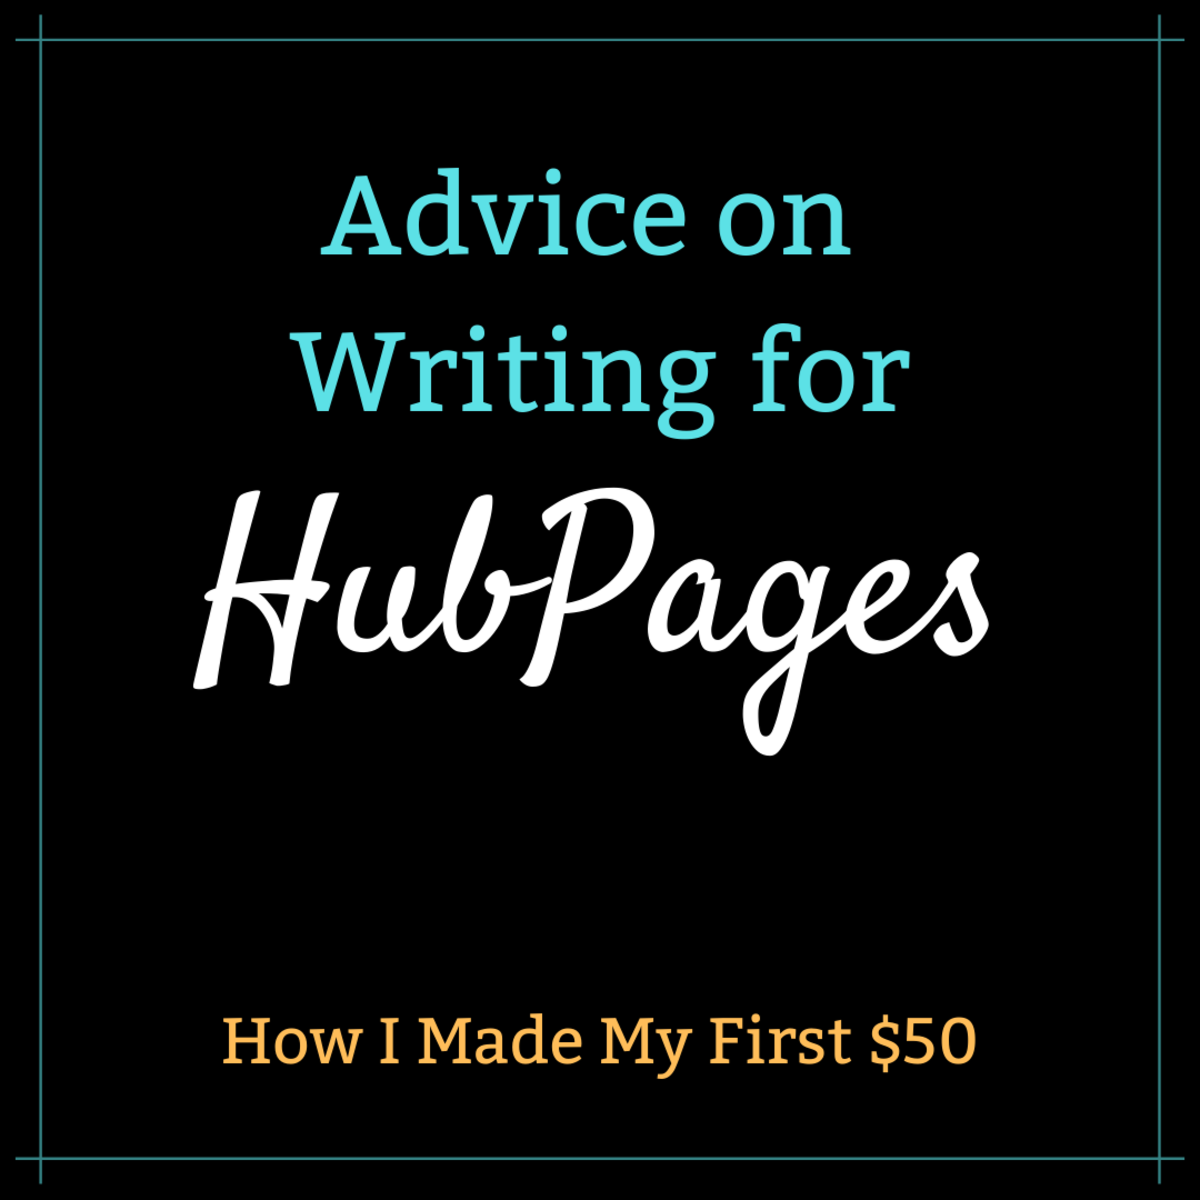 How I Made My First $50 on HubPages